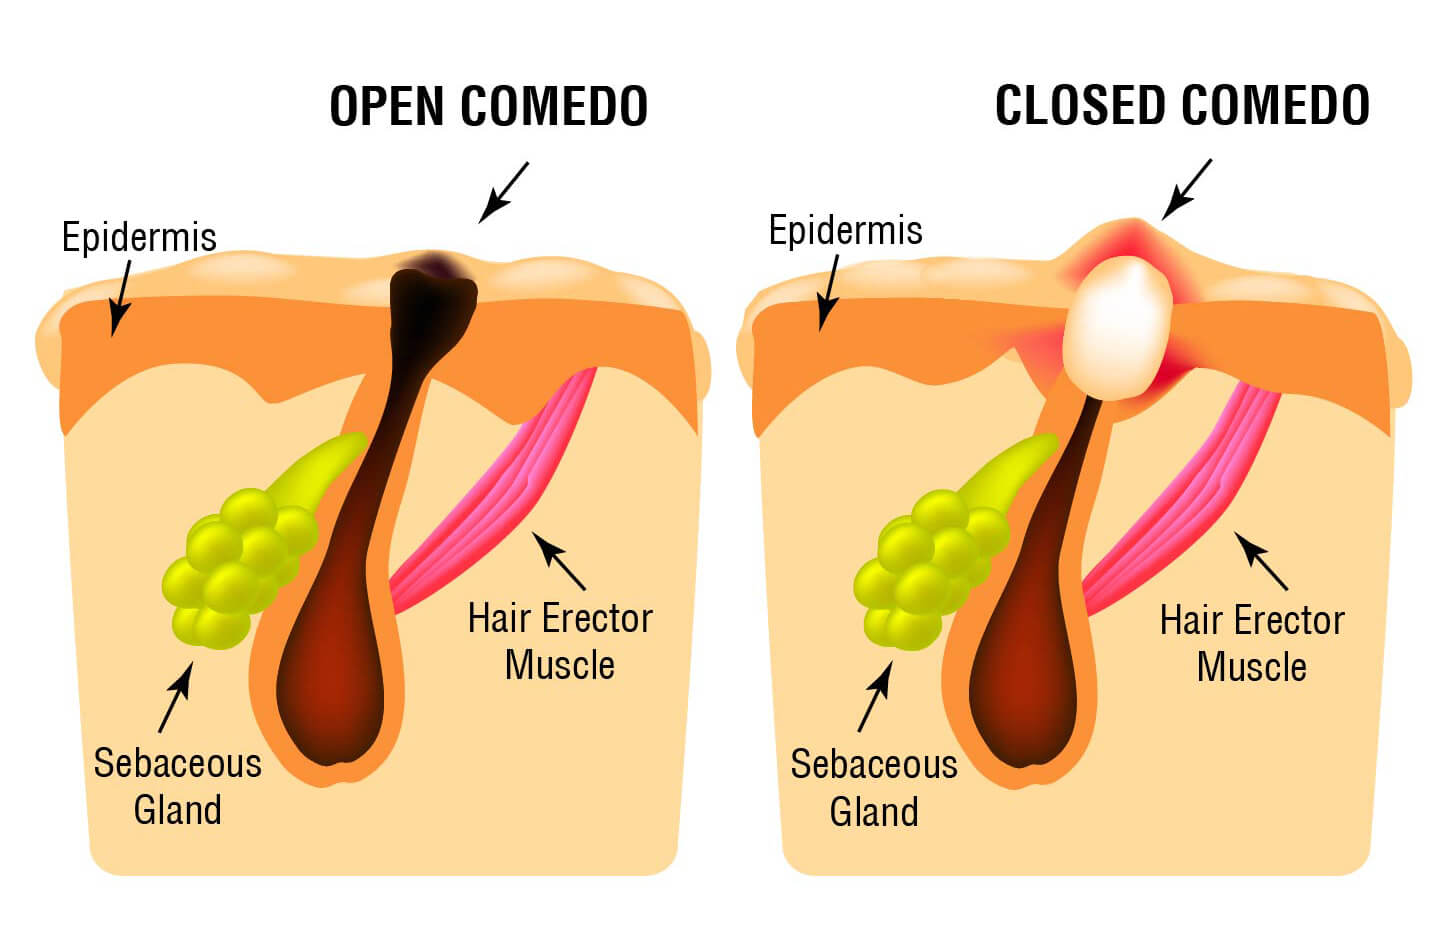 Infographic on open comedone versus closed comedone (on skin)